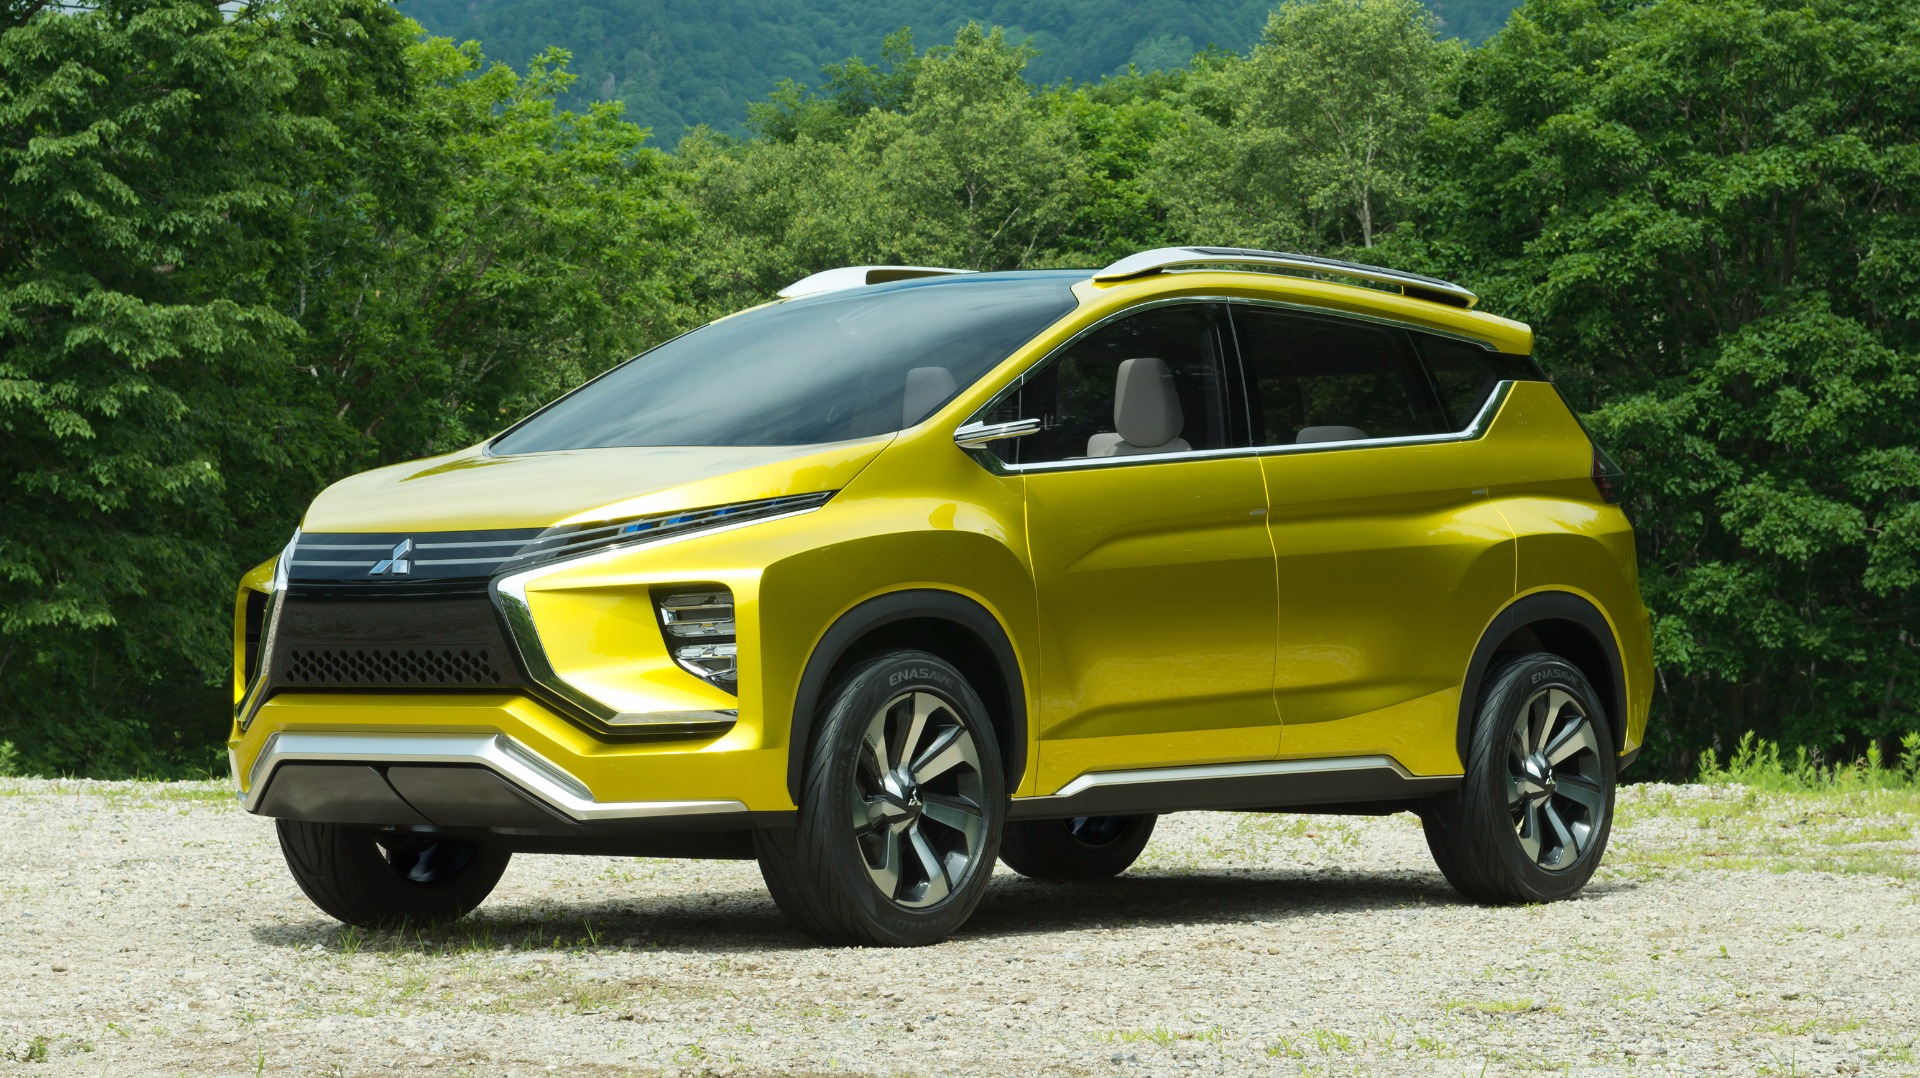 7 Seater Suzuki Cars >> News - Mitsubishi Again Previews XM, 7-Seater Crossover